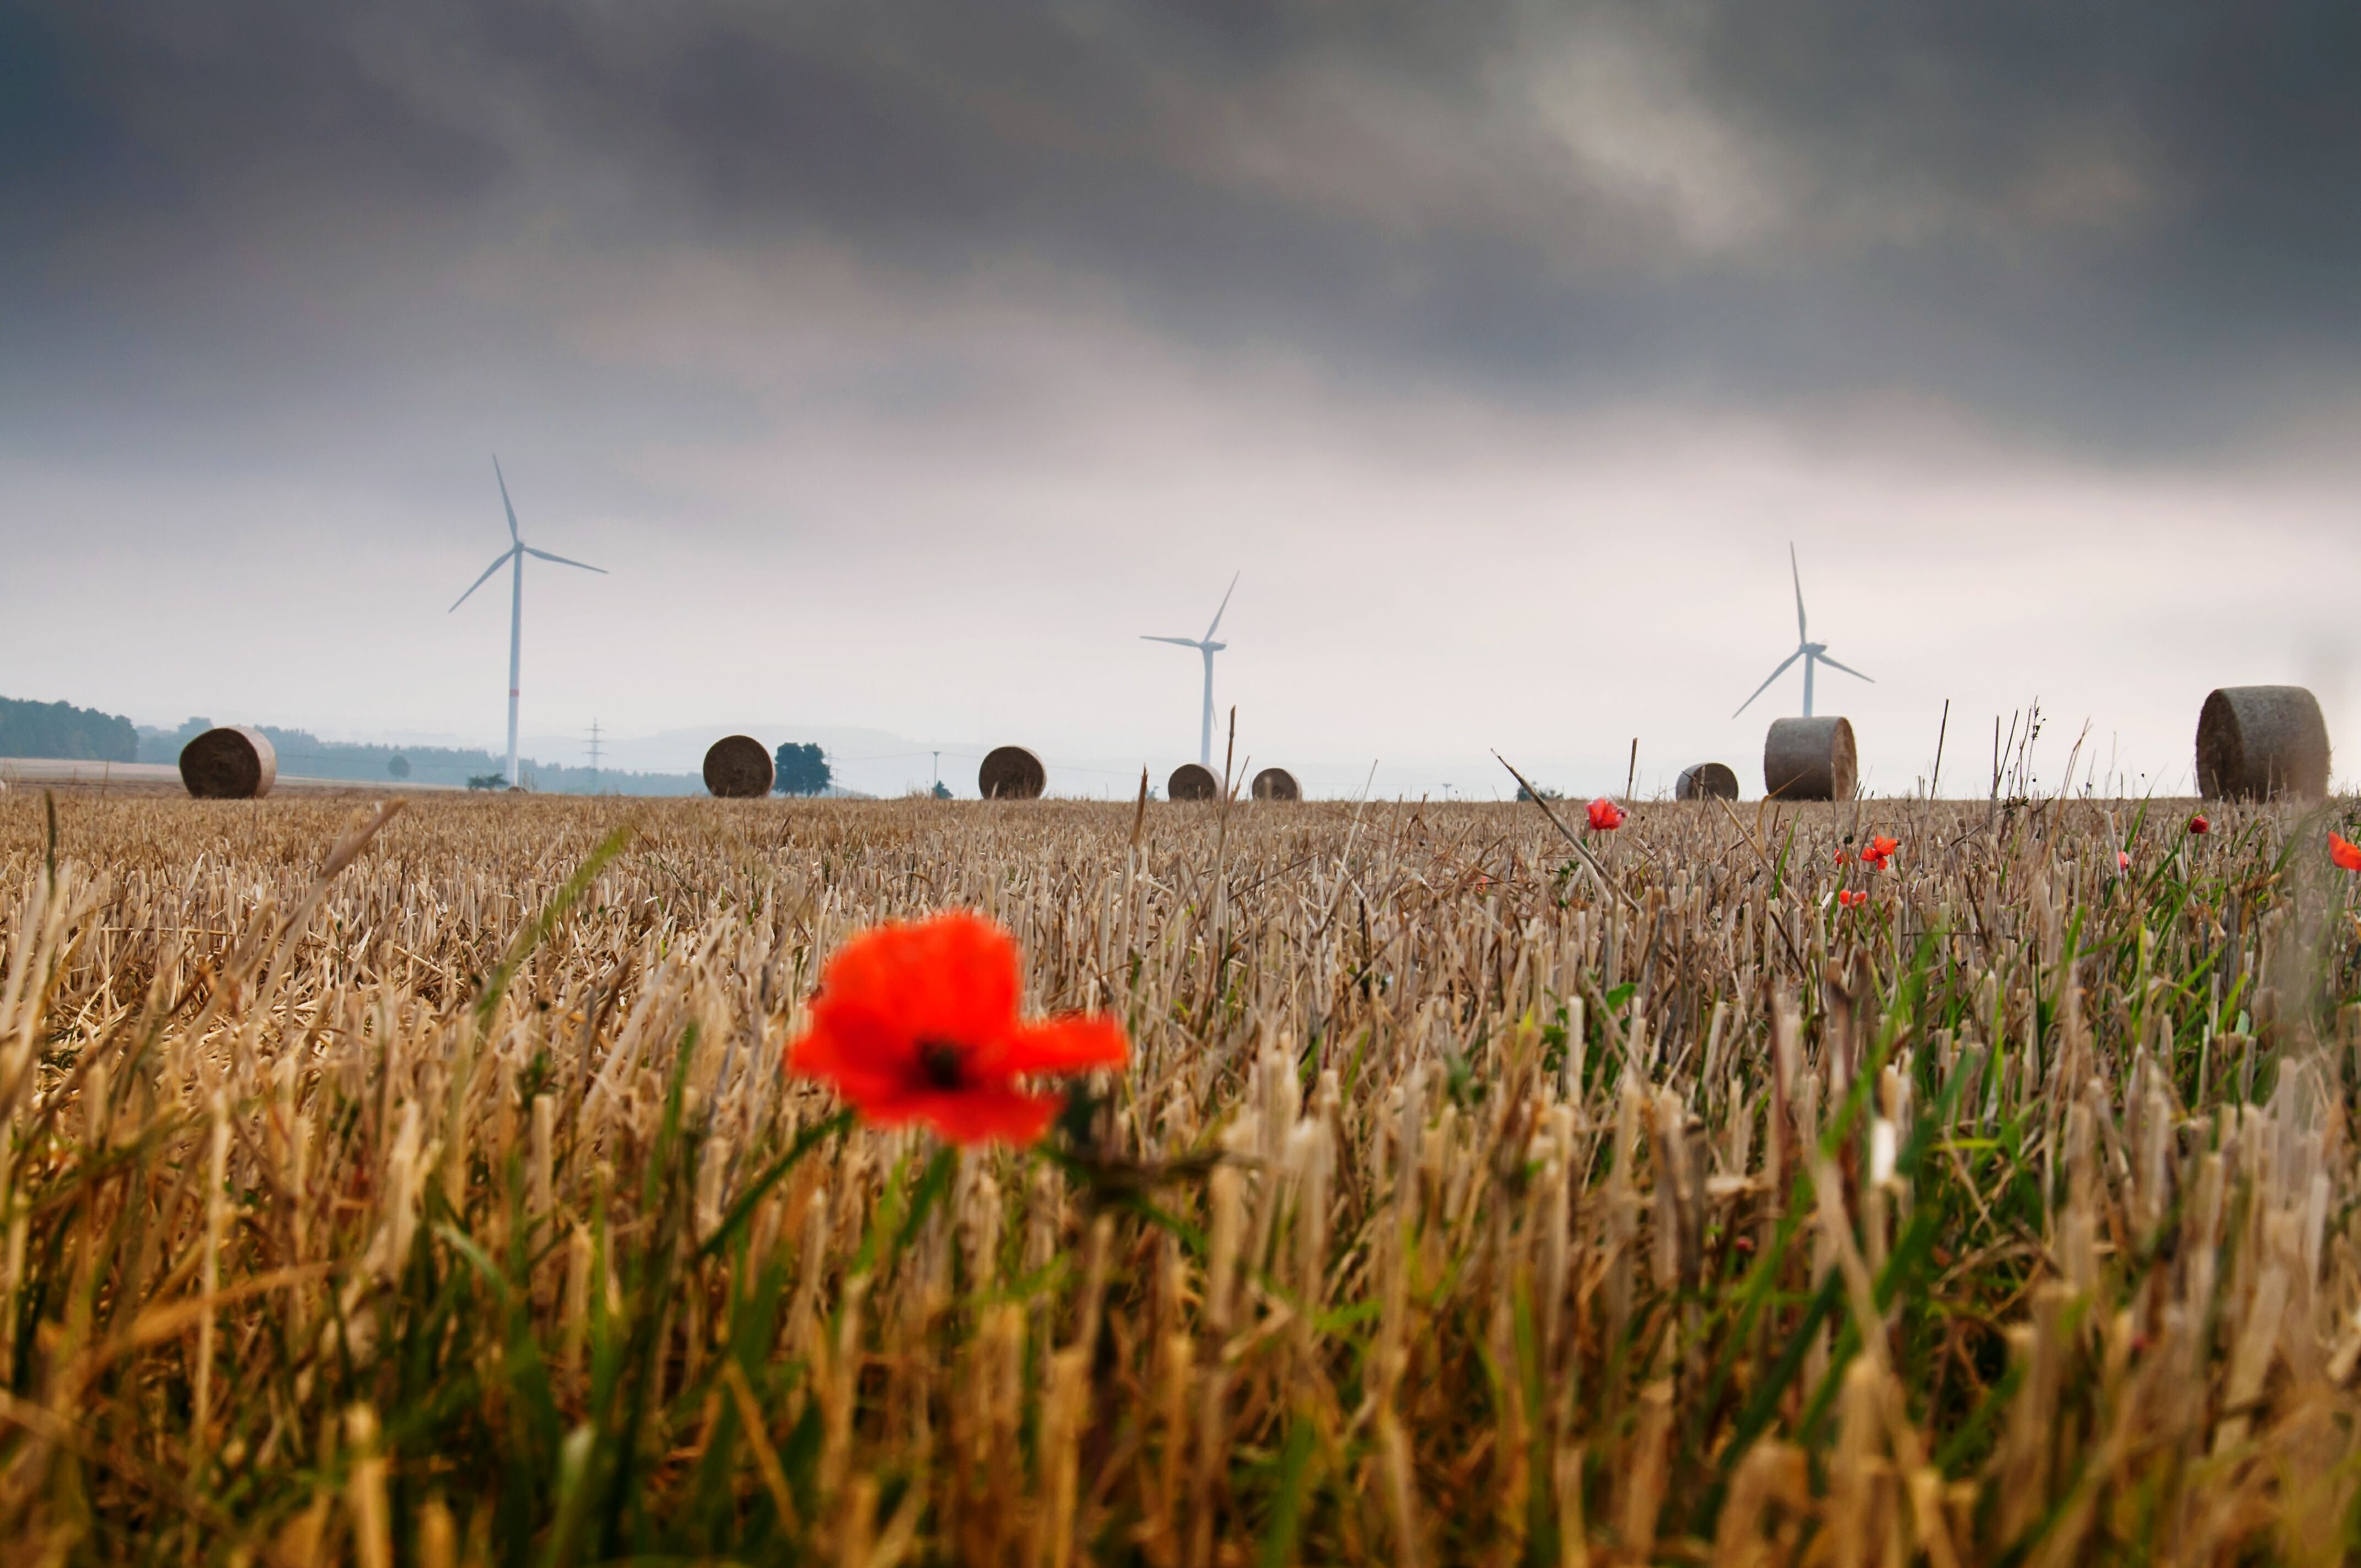 field, rural scene, agriculture, sky, landscape, flower, farm, growth, plant, poppy, crop, cloud - sky, nature, beauty in nature, wind power, windmill, freshness, cereal plant, cloud, tranquility